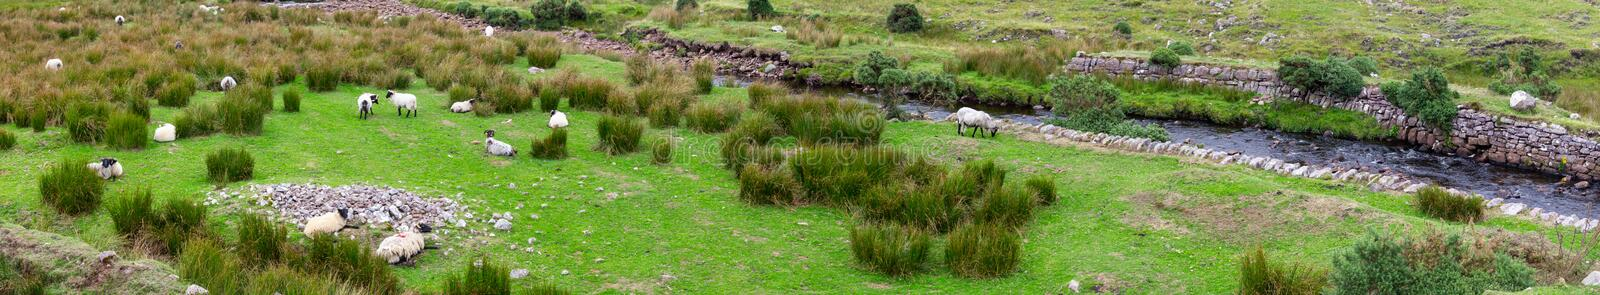 Panorama of a sheep herd, Great Western Greenway trail. Ireland stock images